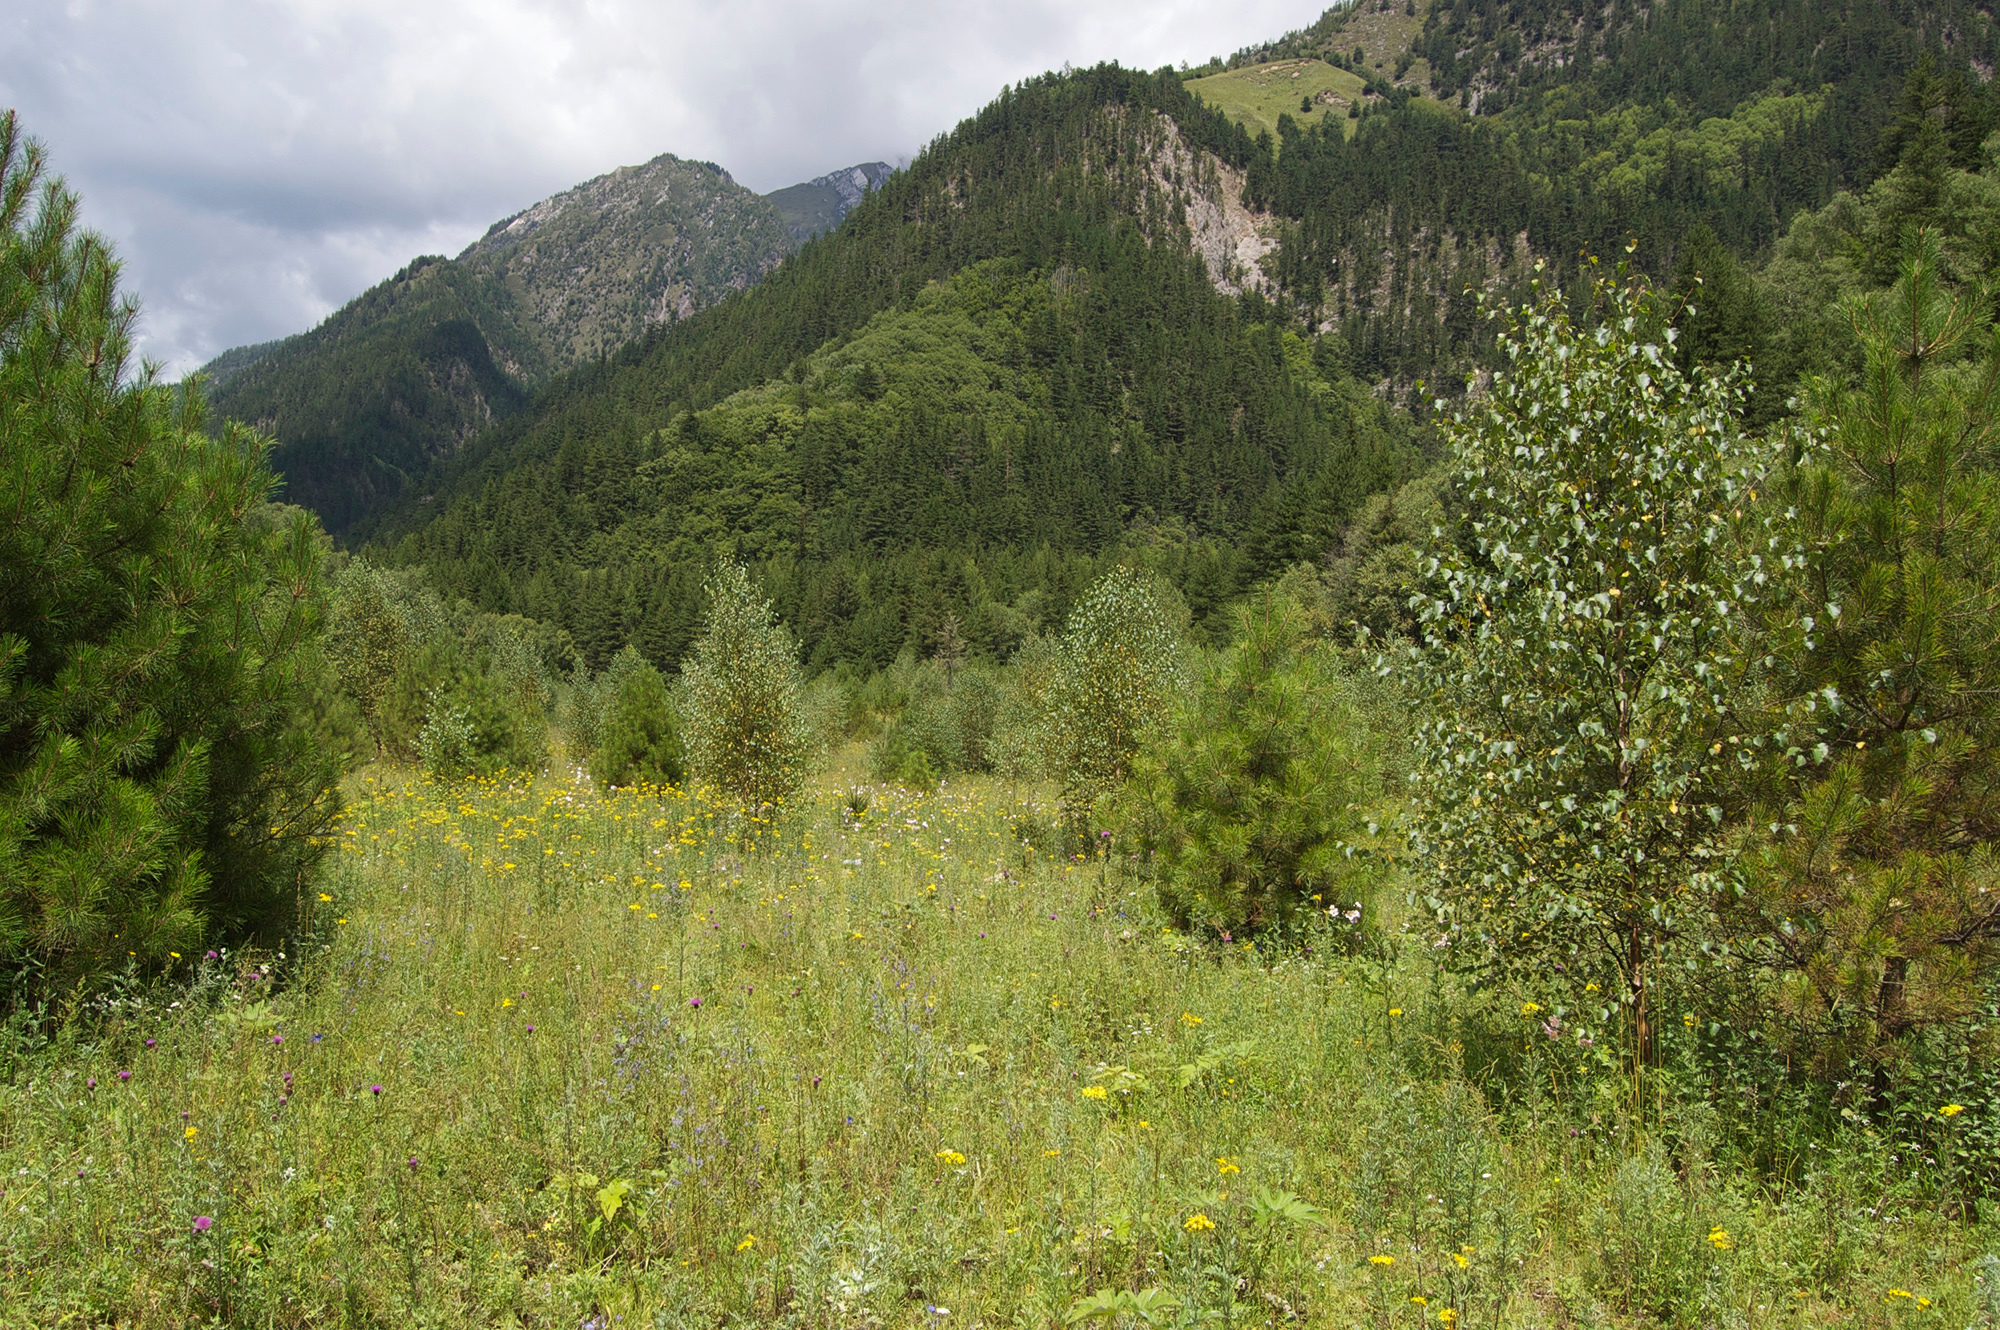 meadow and conifer trees in jiuzhaigou nature reserve, sichuan